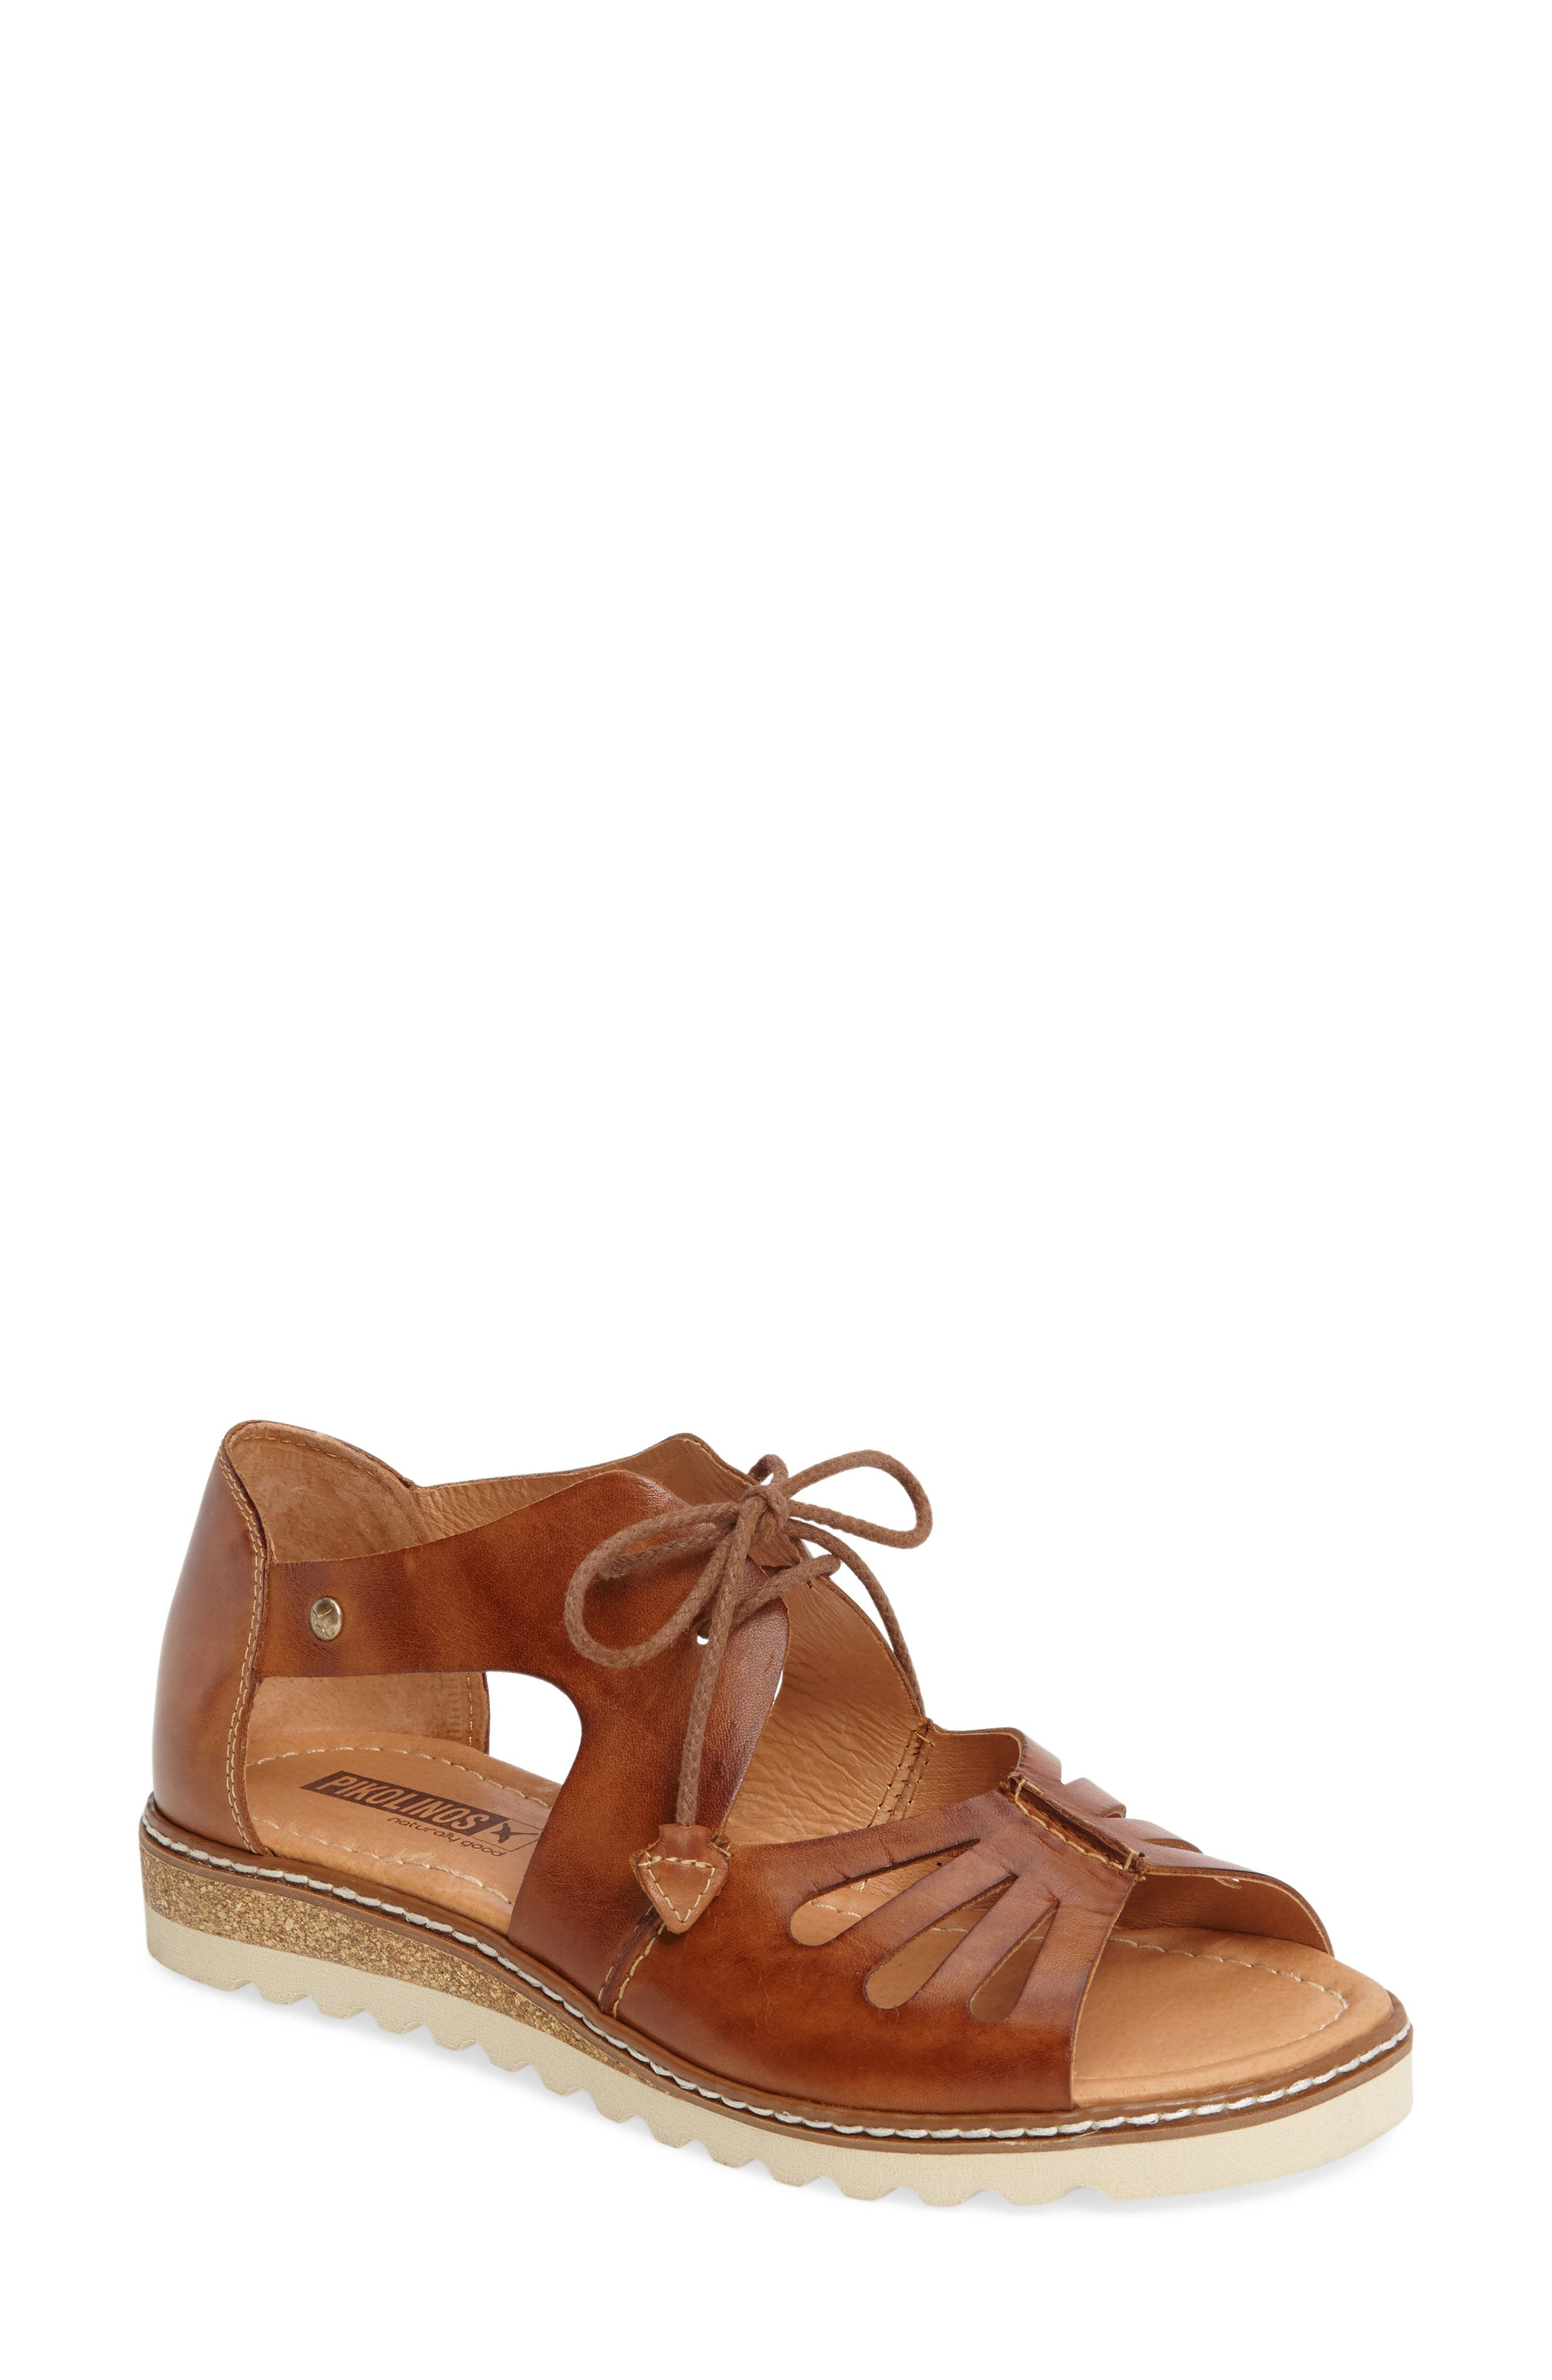 PIKOLINOS,                             Alcudia Lace-Up Sandal,                             Main thumbnail 1, color,                             BRANDY LEATHER